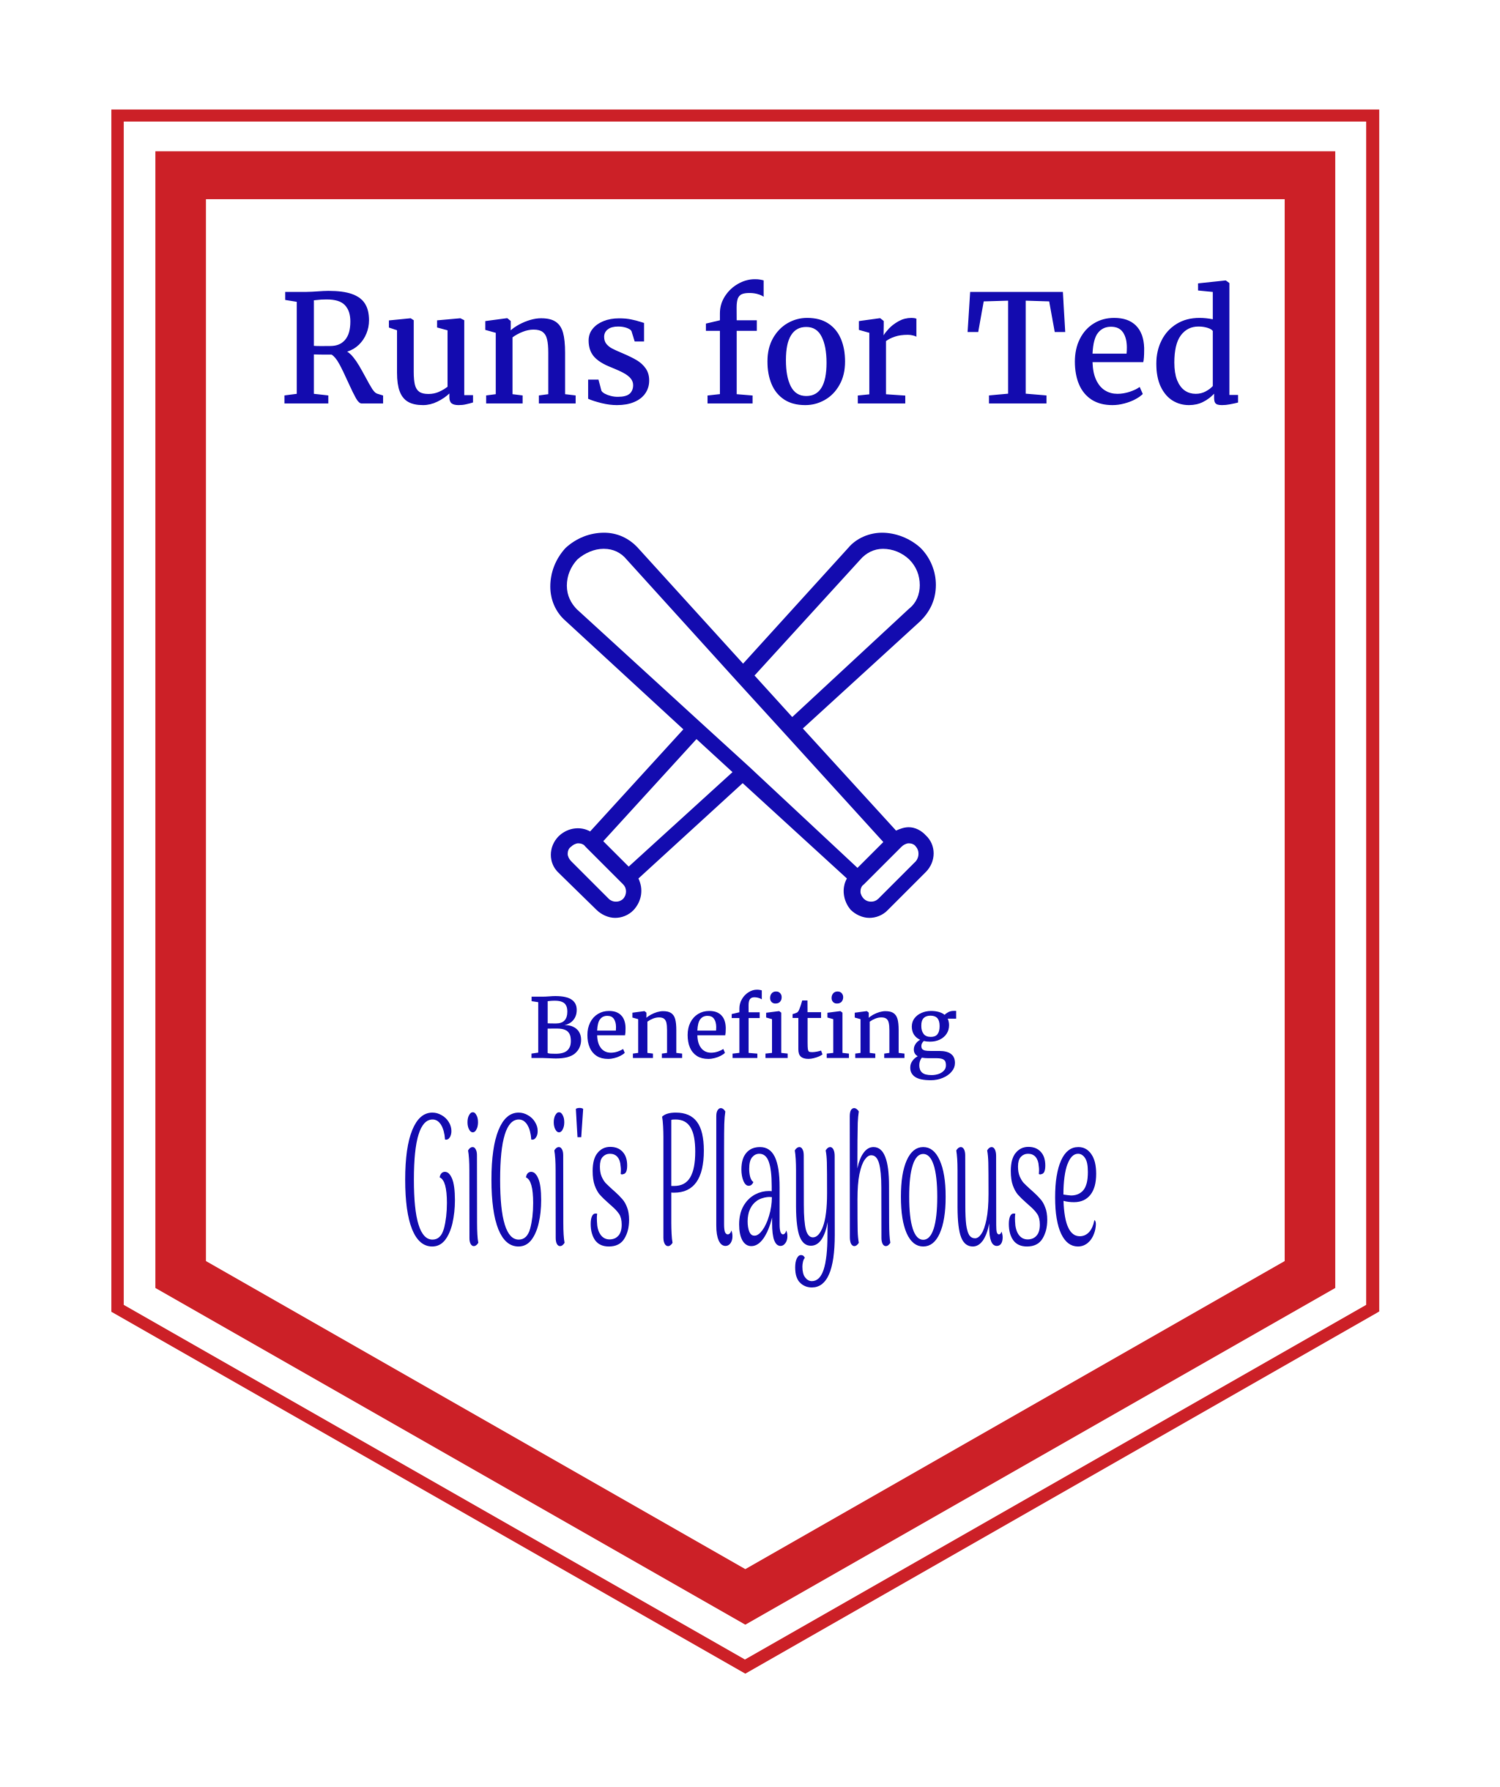 Runs for Ted